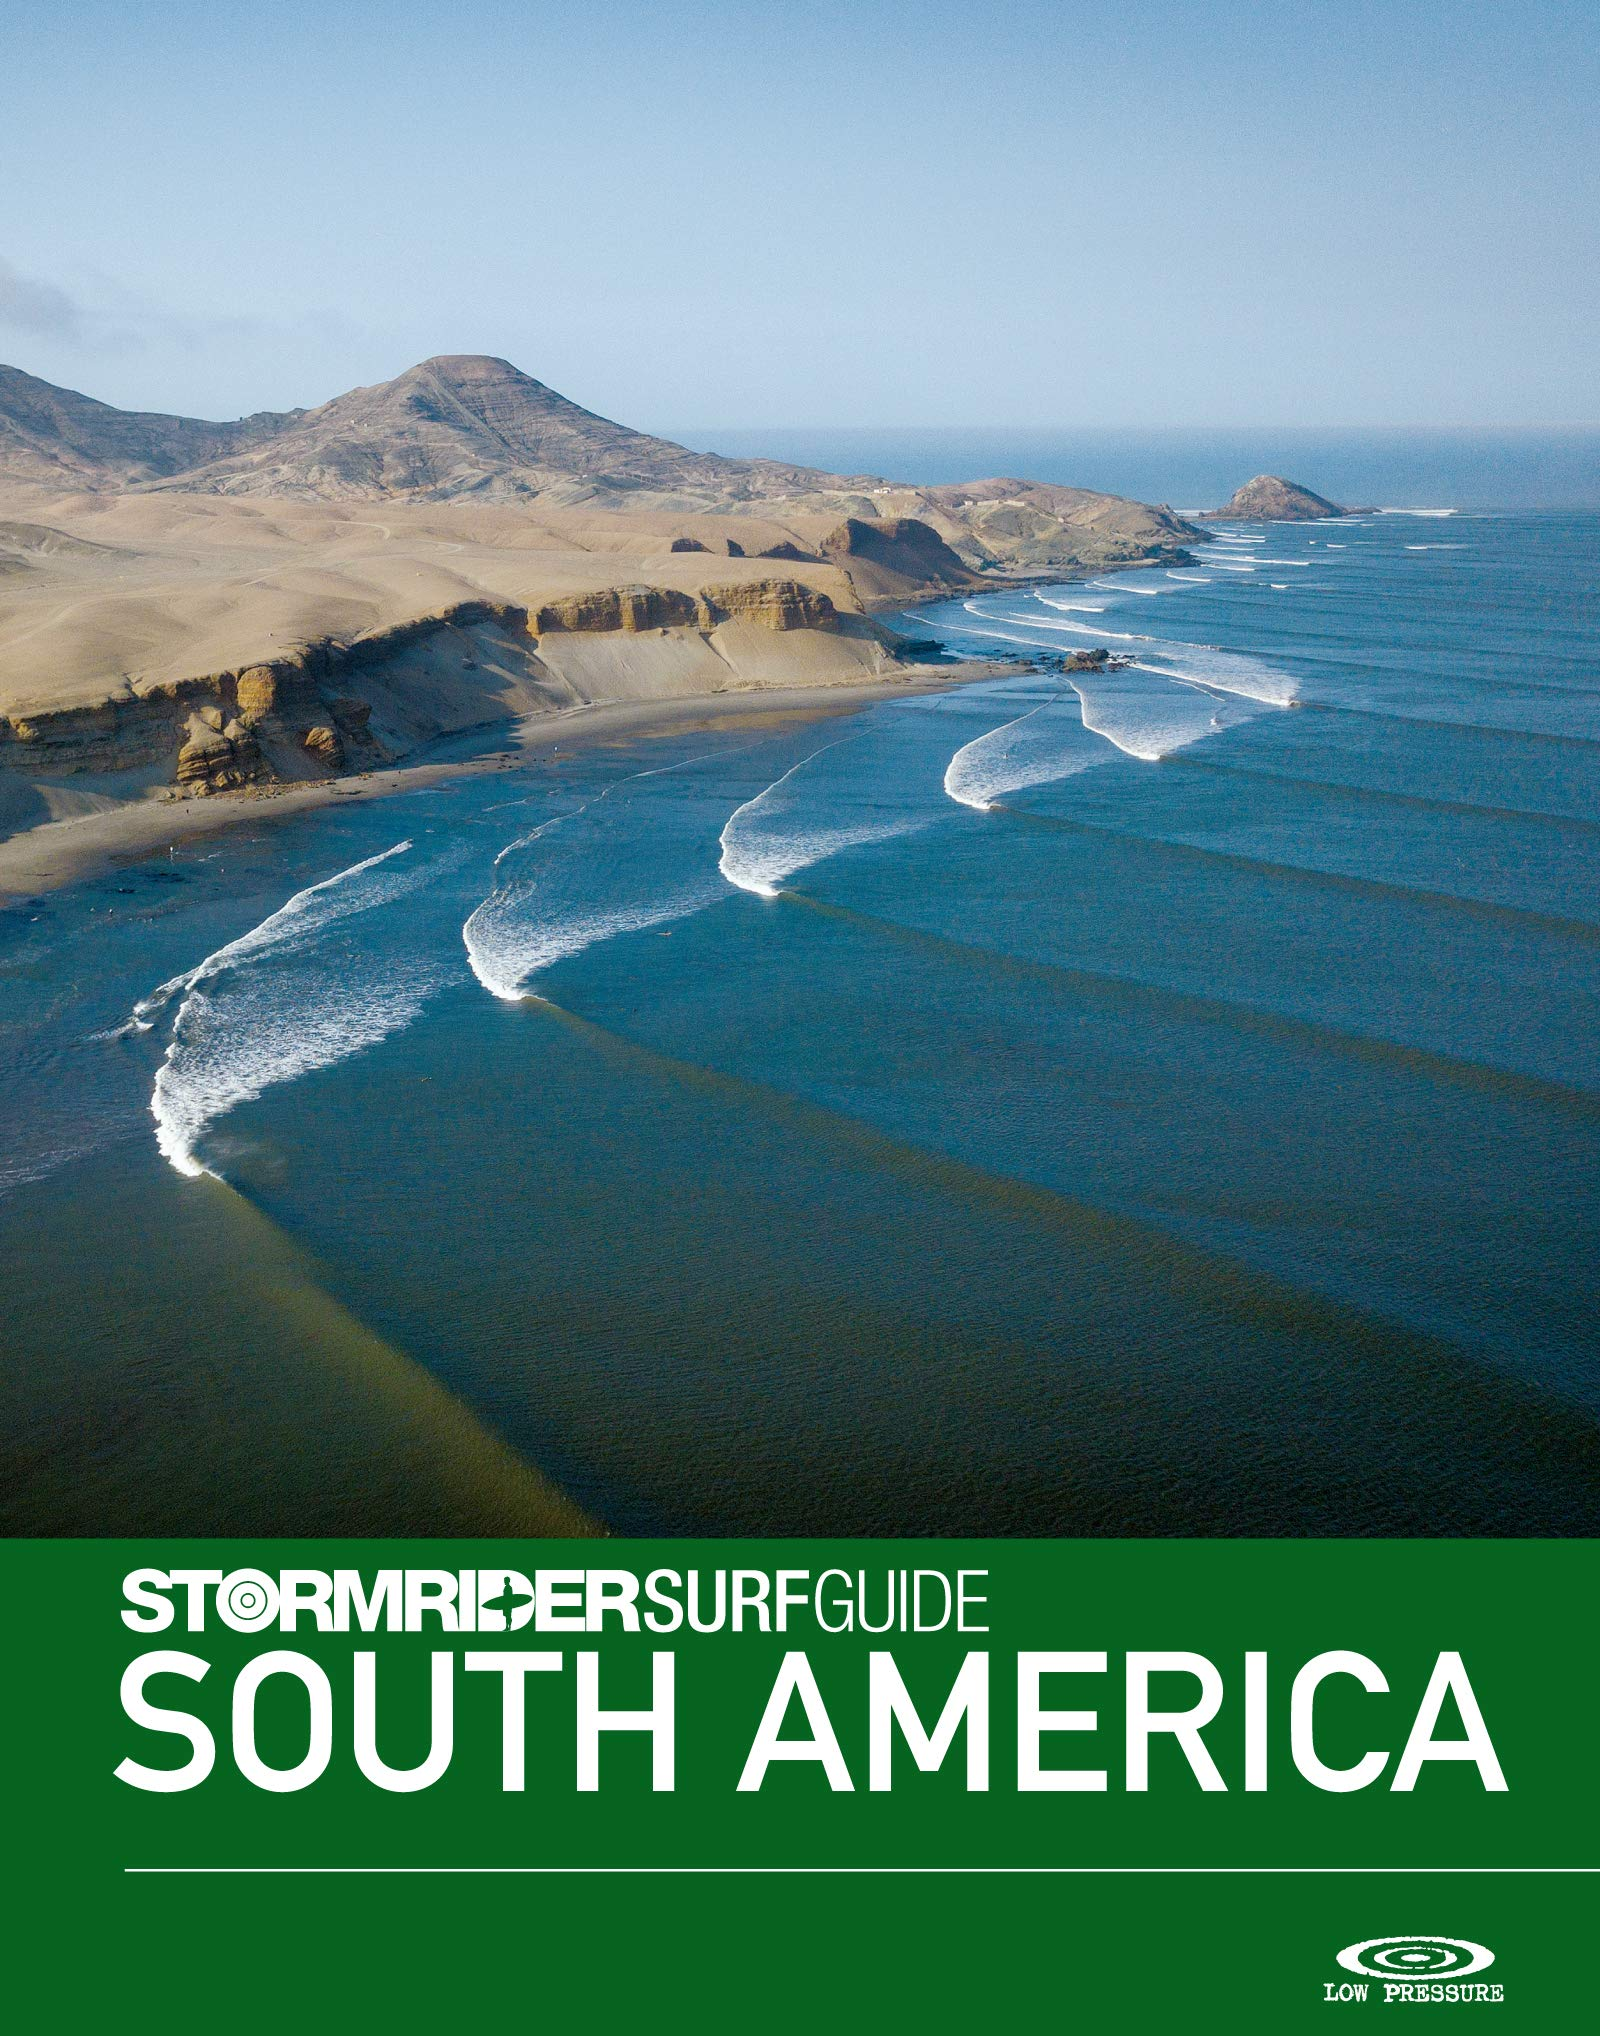 The Stormrider Surf Guide South America  Surfing In Brazil Peru Chile Colombia Venezuela Ecuador Uruguay Argentina And The Galapagos Islands  Stormrider Surfing Guides   English Edition